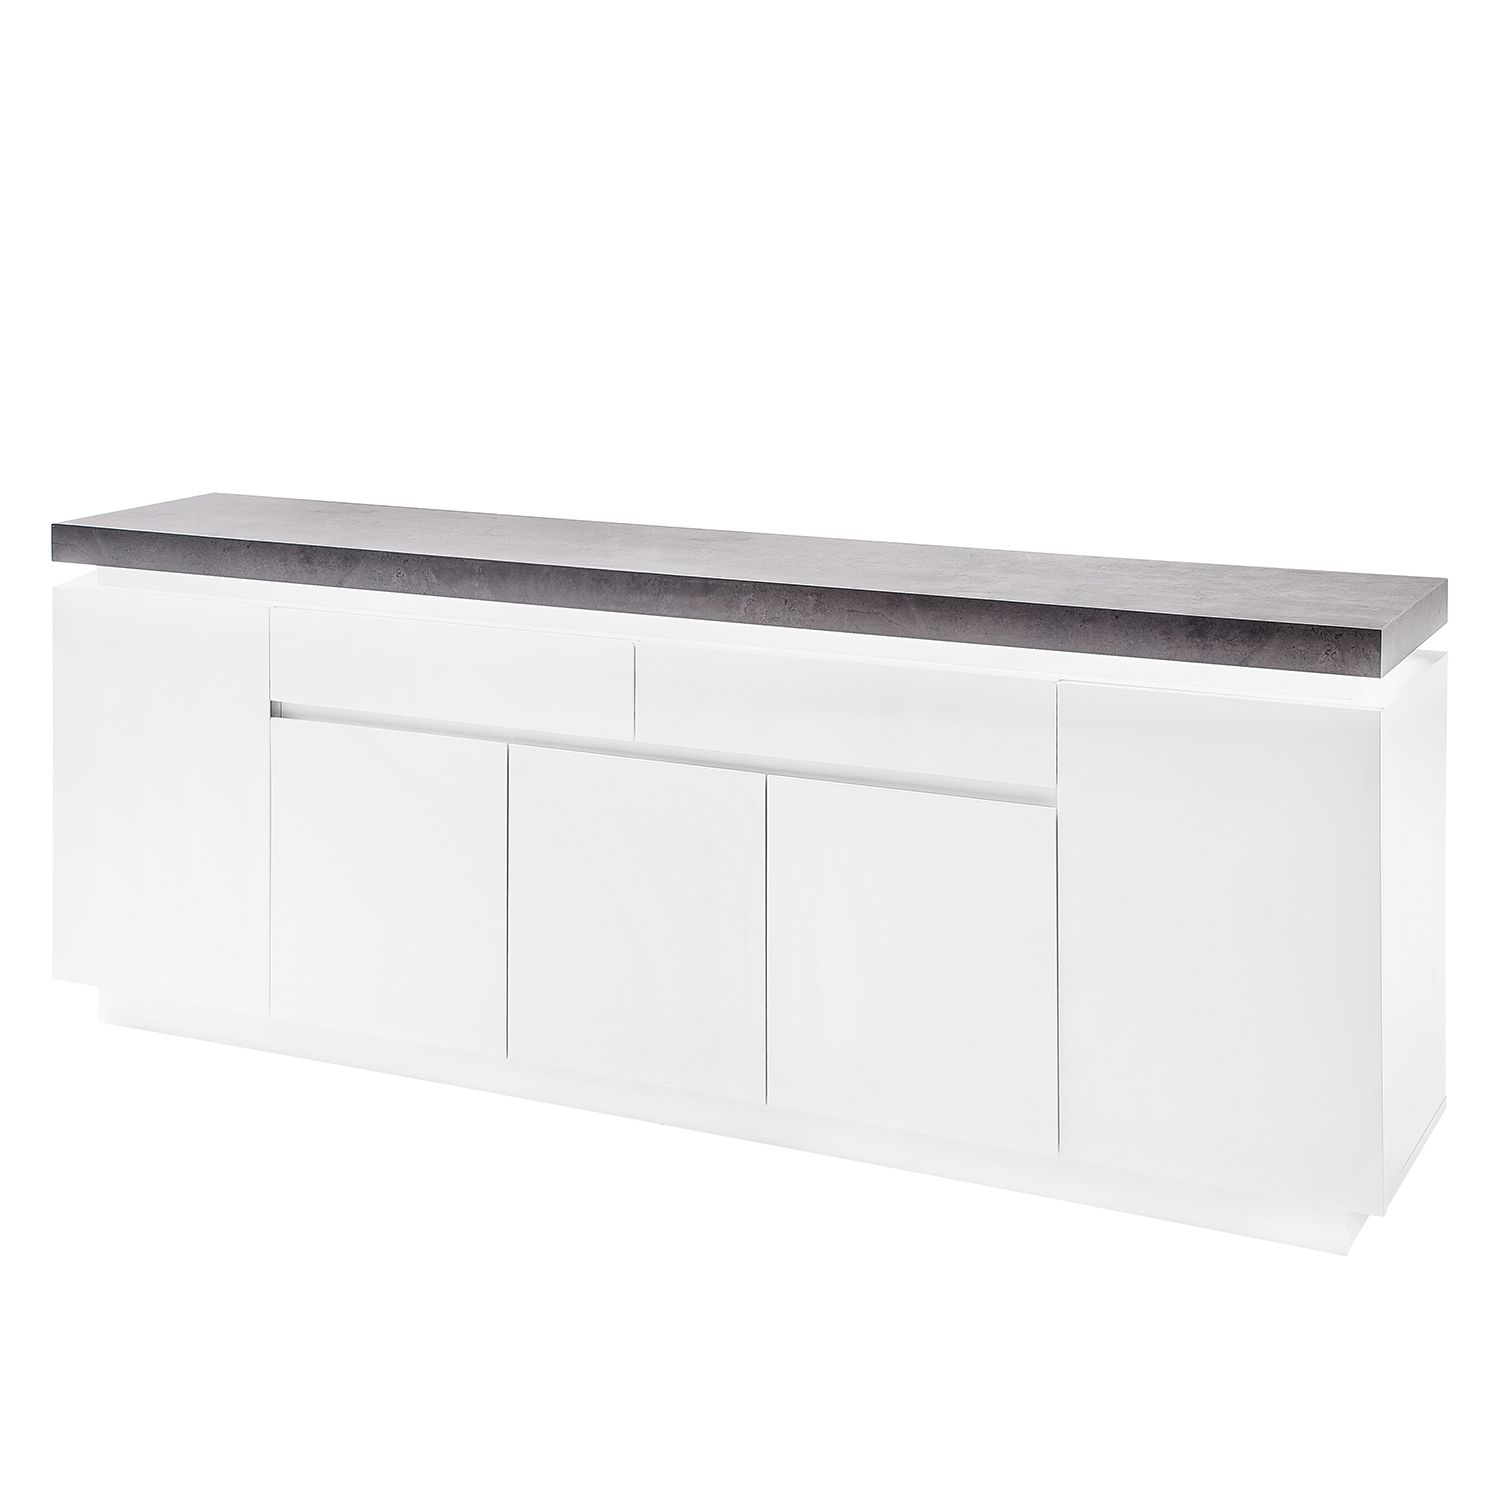 sideboard namona iii inkl beleuchtung matt wei beton. Black Bedroom Furniture Sets. Home Design Ideas